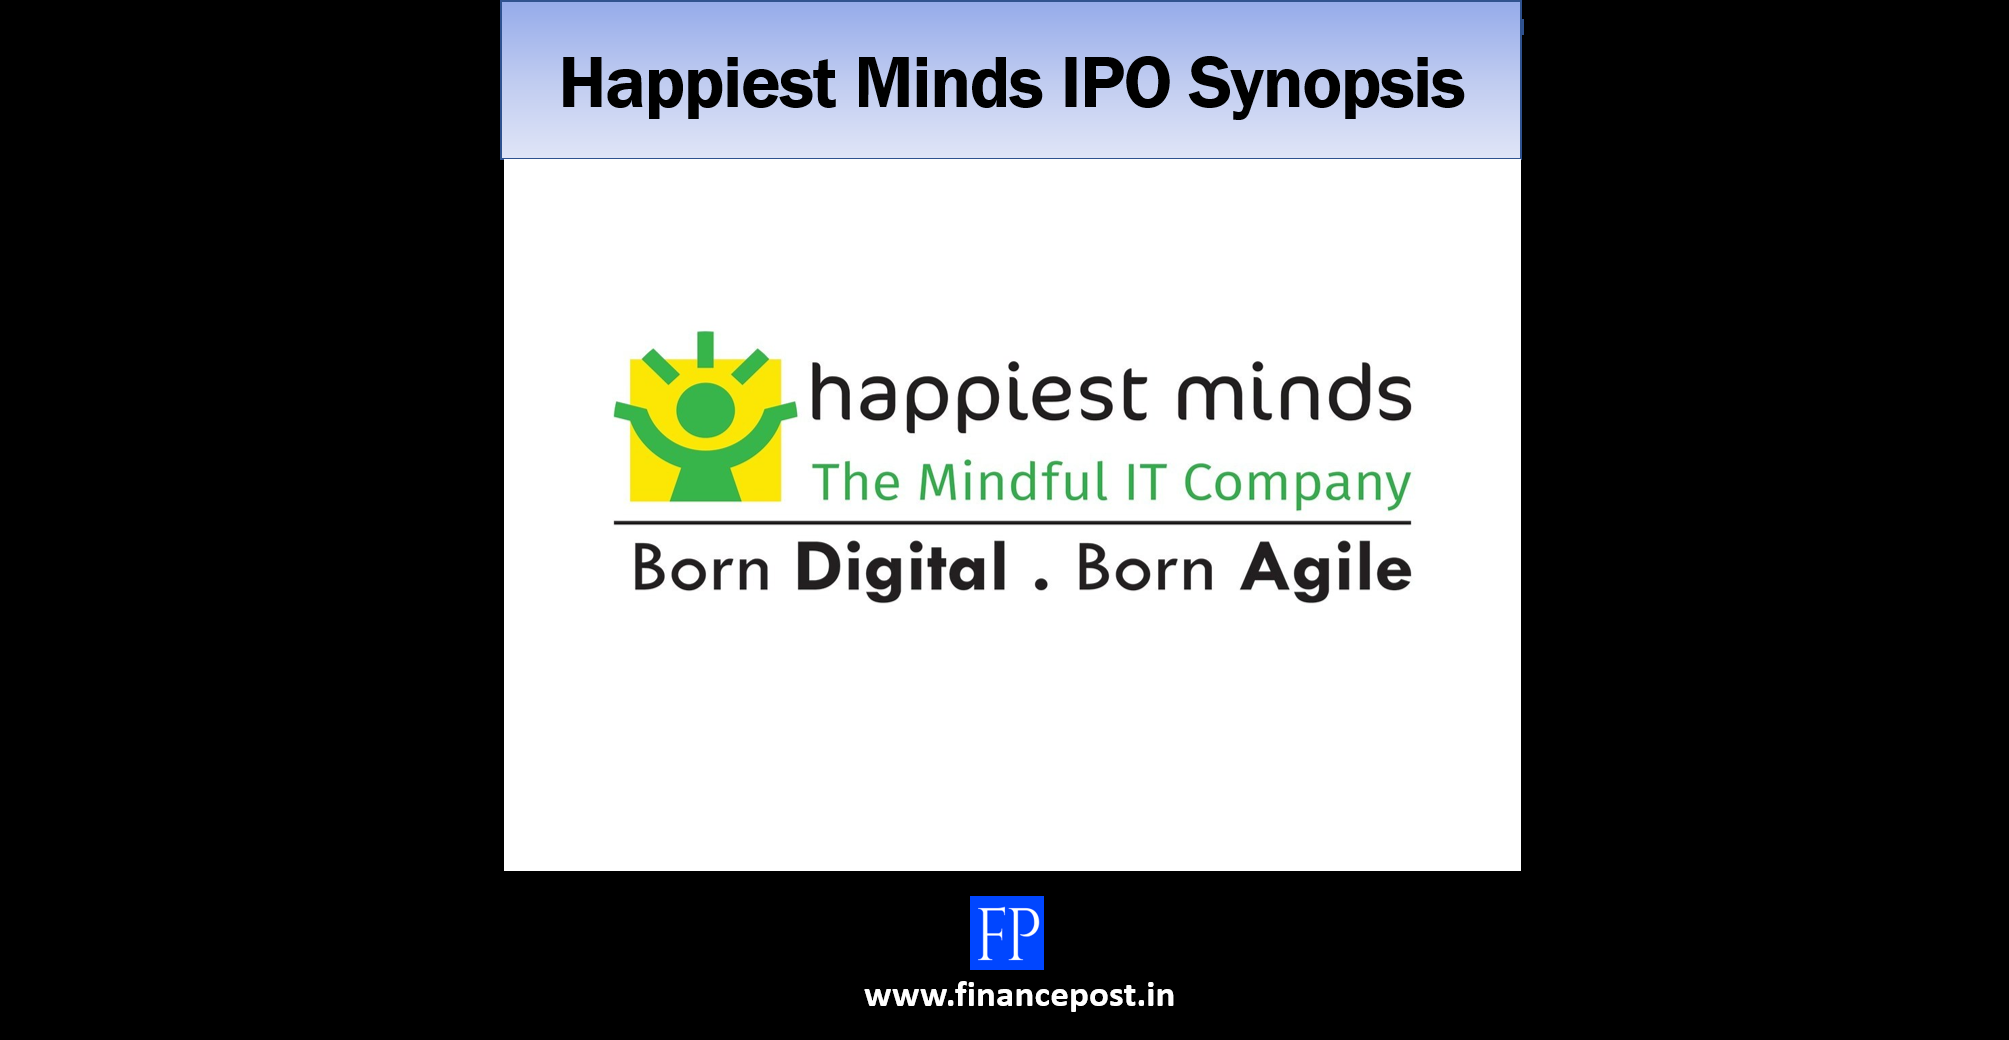 happiest minds ipo synopsis